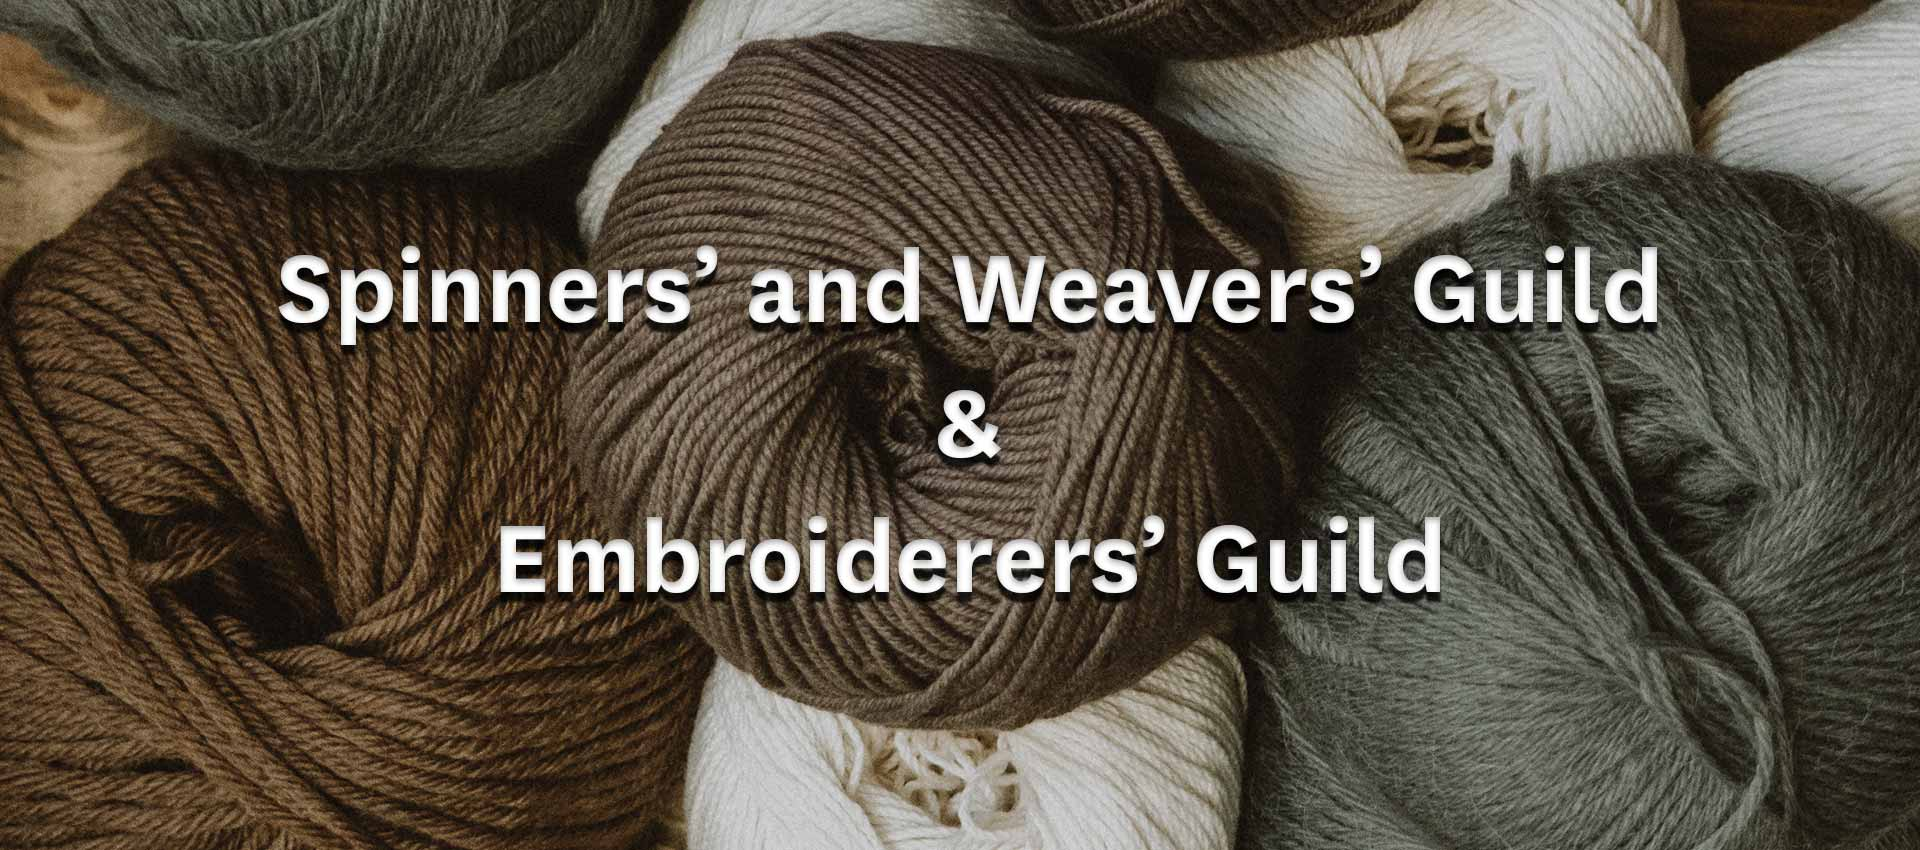 https://www.temanawa.co.nz/wp-content/uploads/2021/03/Spinners-and-Weavers-1.jpg